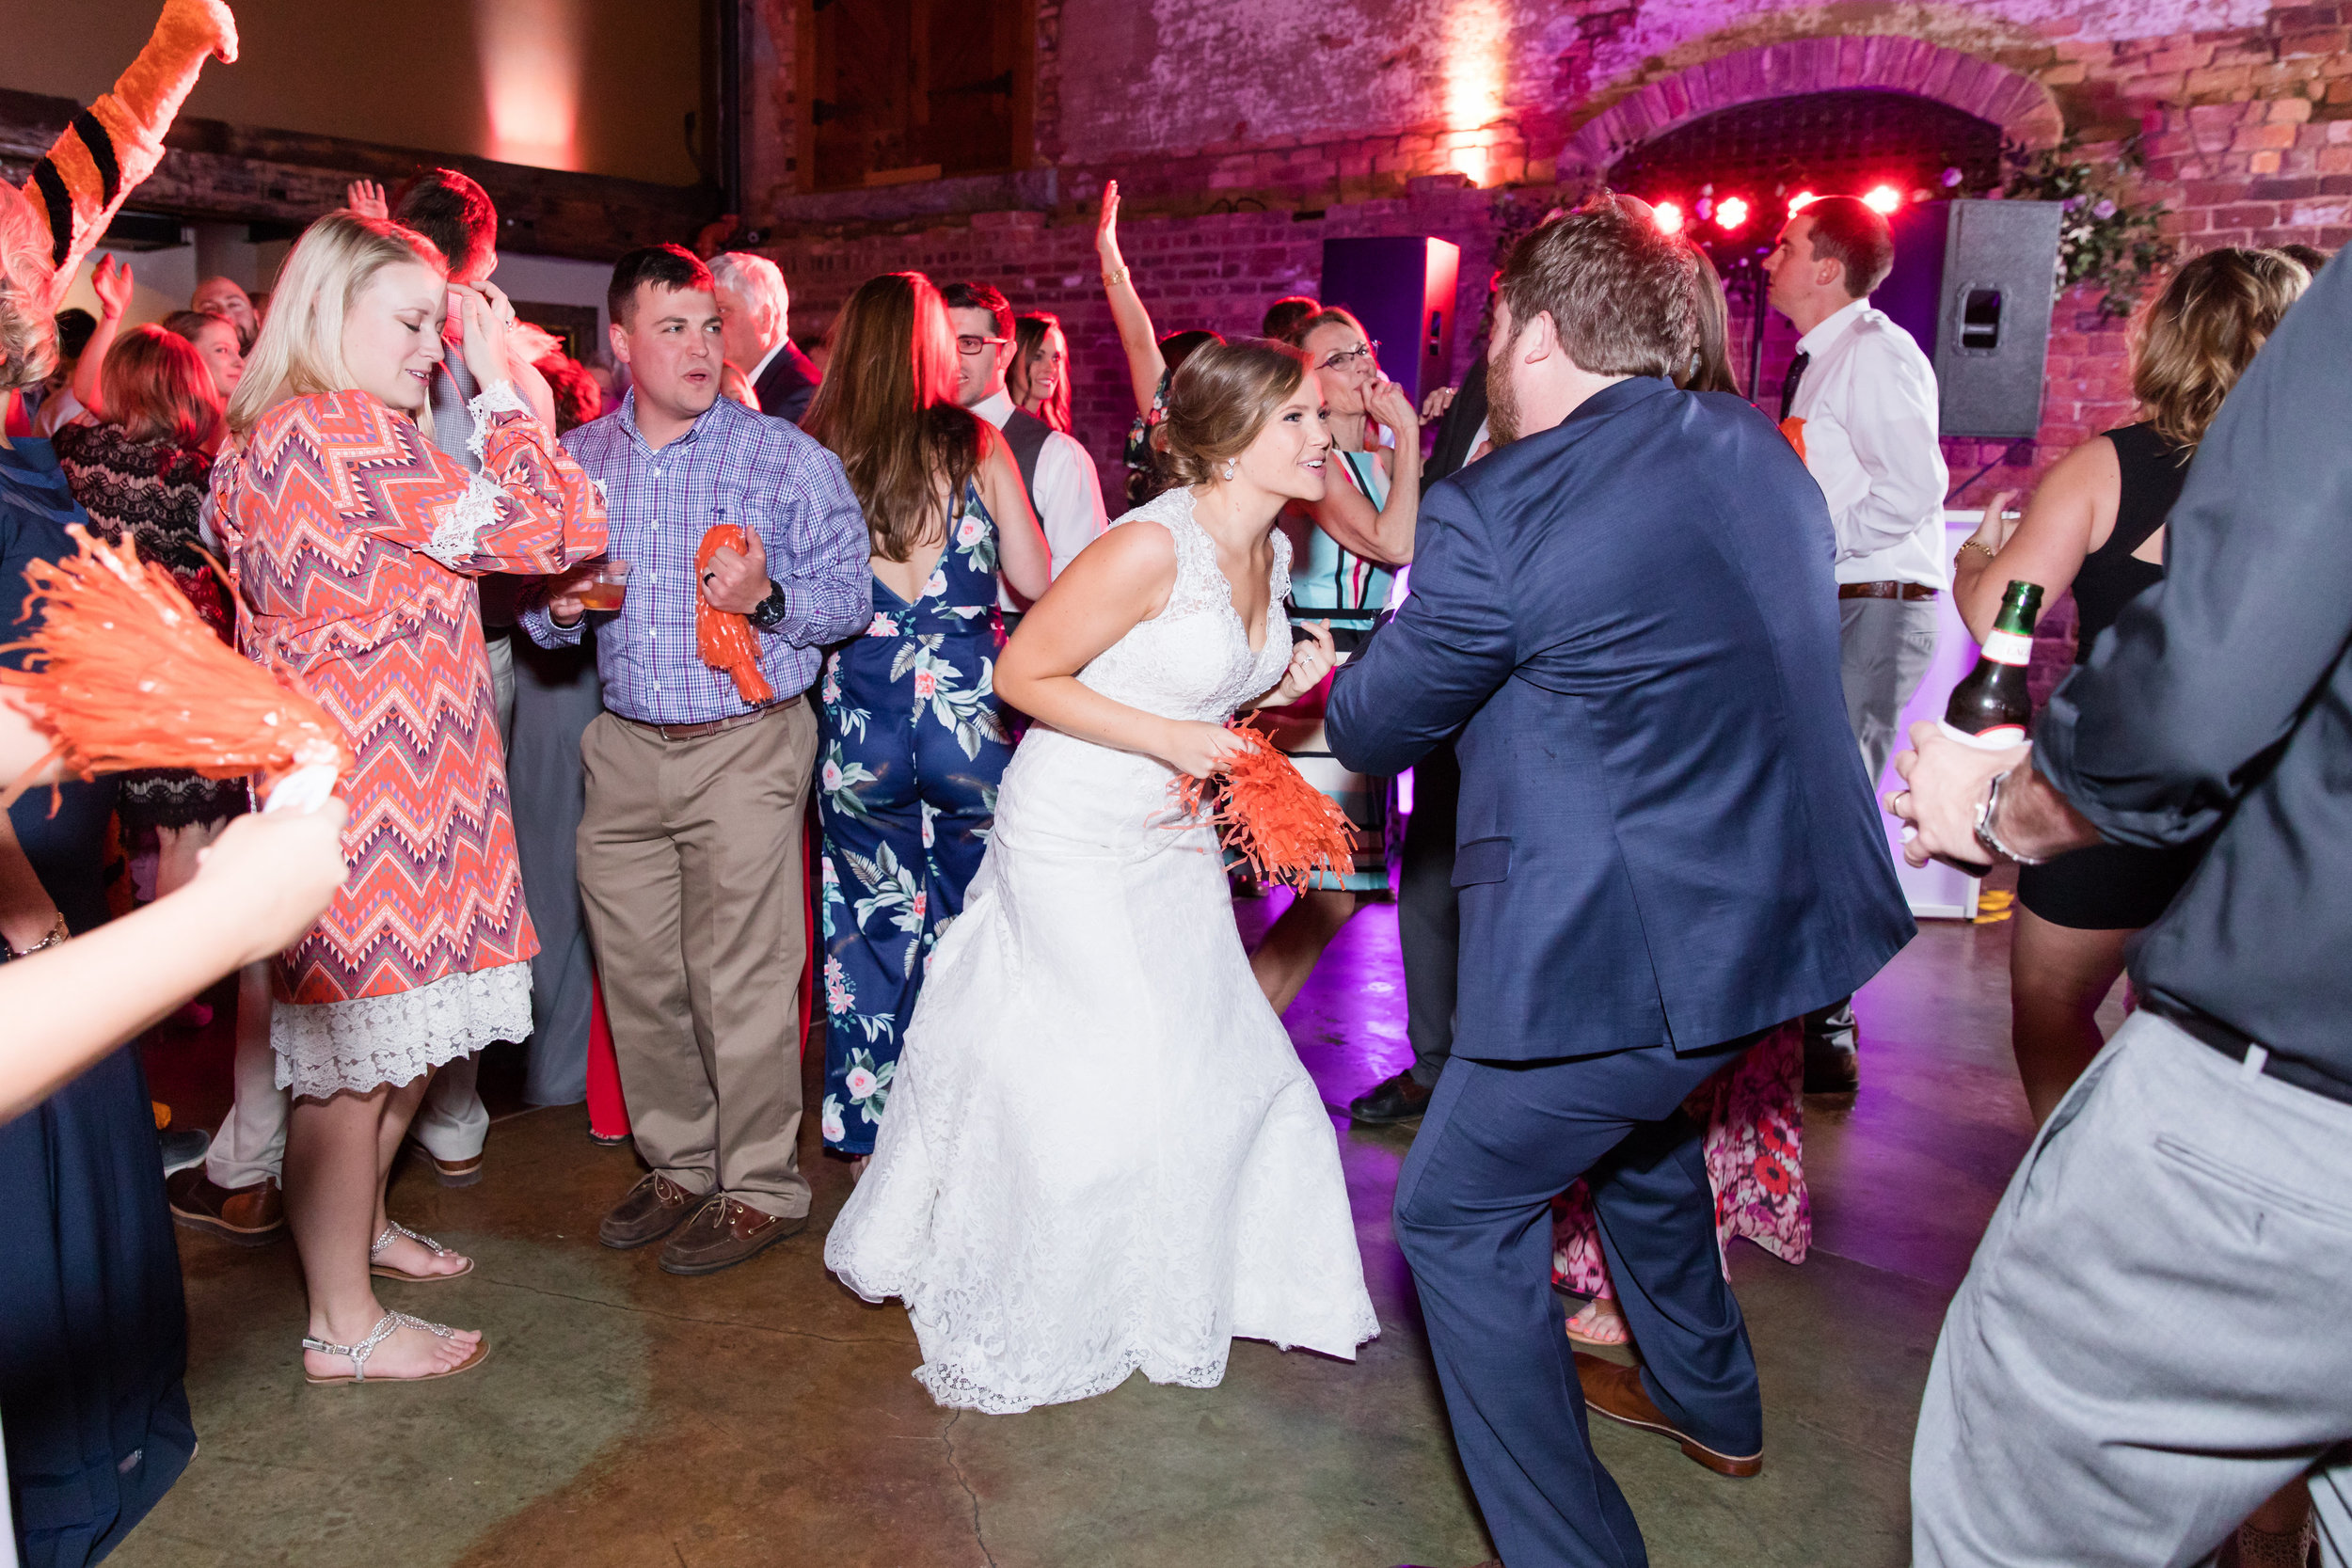 Packing dance floors…it's our thing! Megan and Ben had such a fun wedding DJ with Chris.